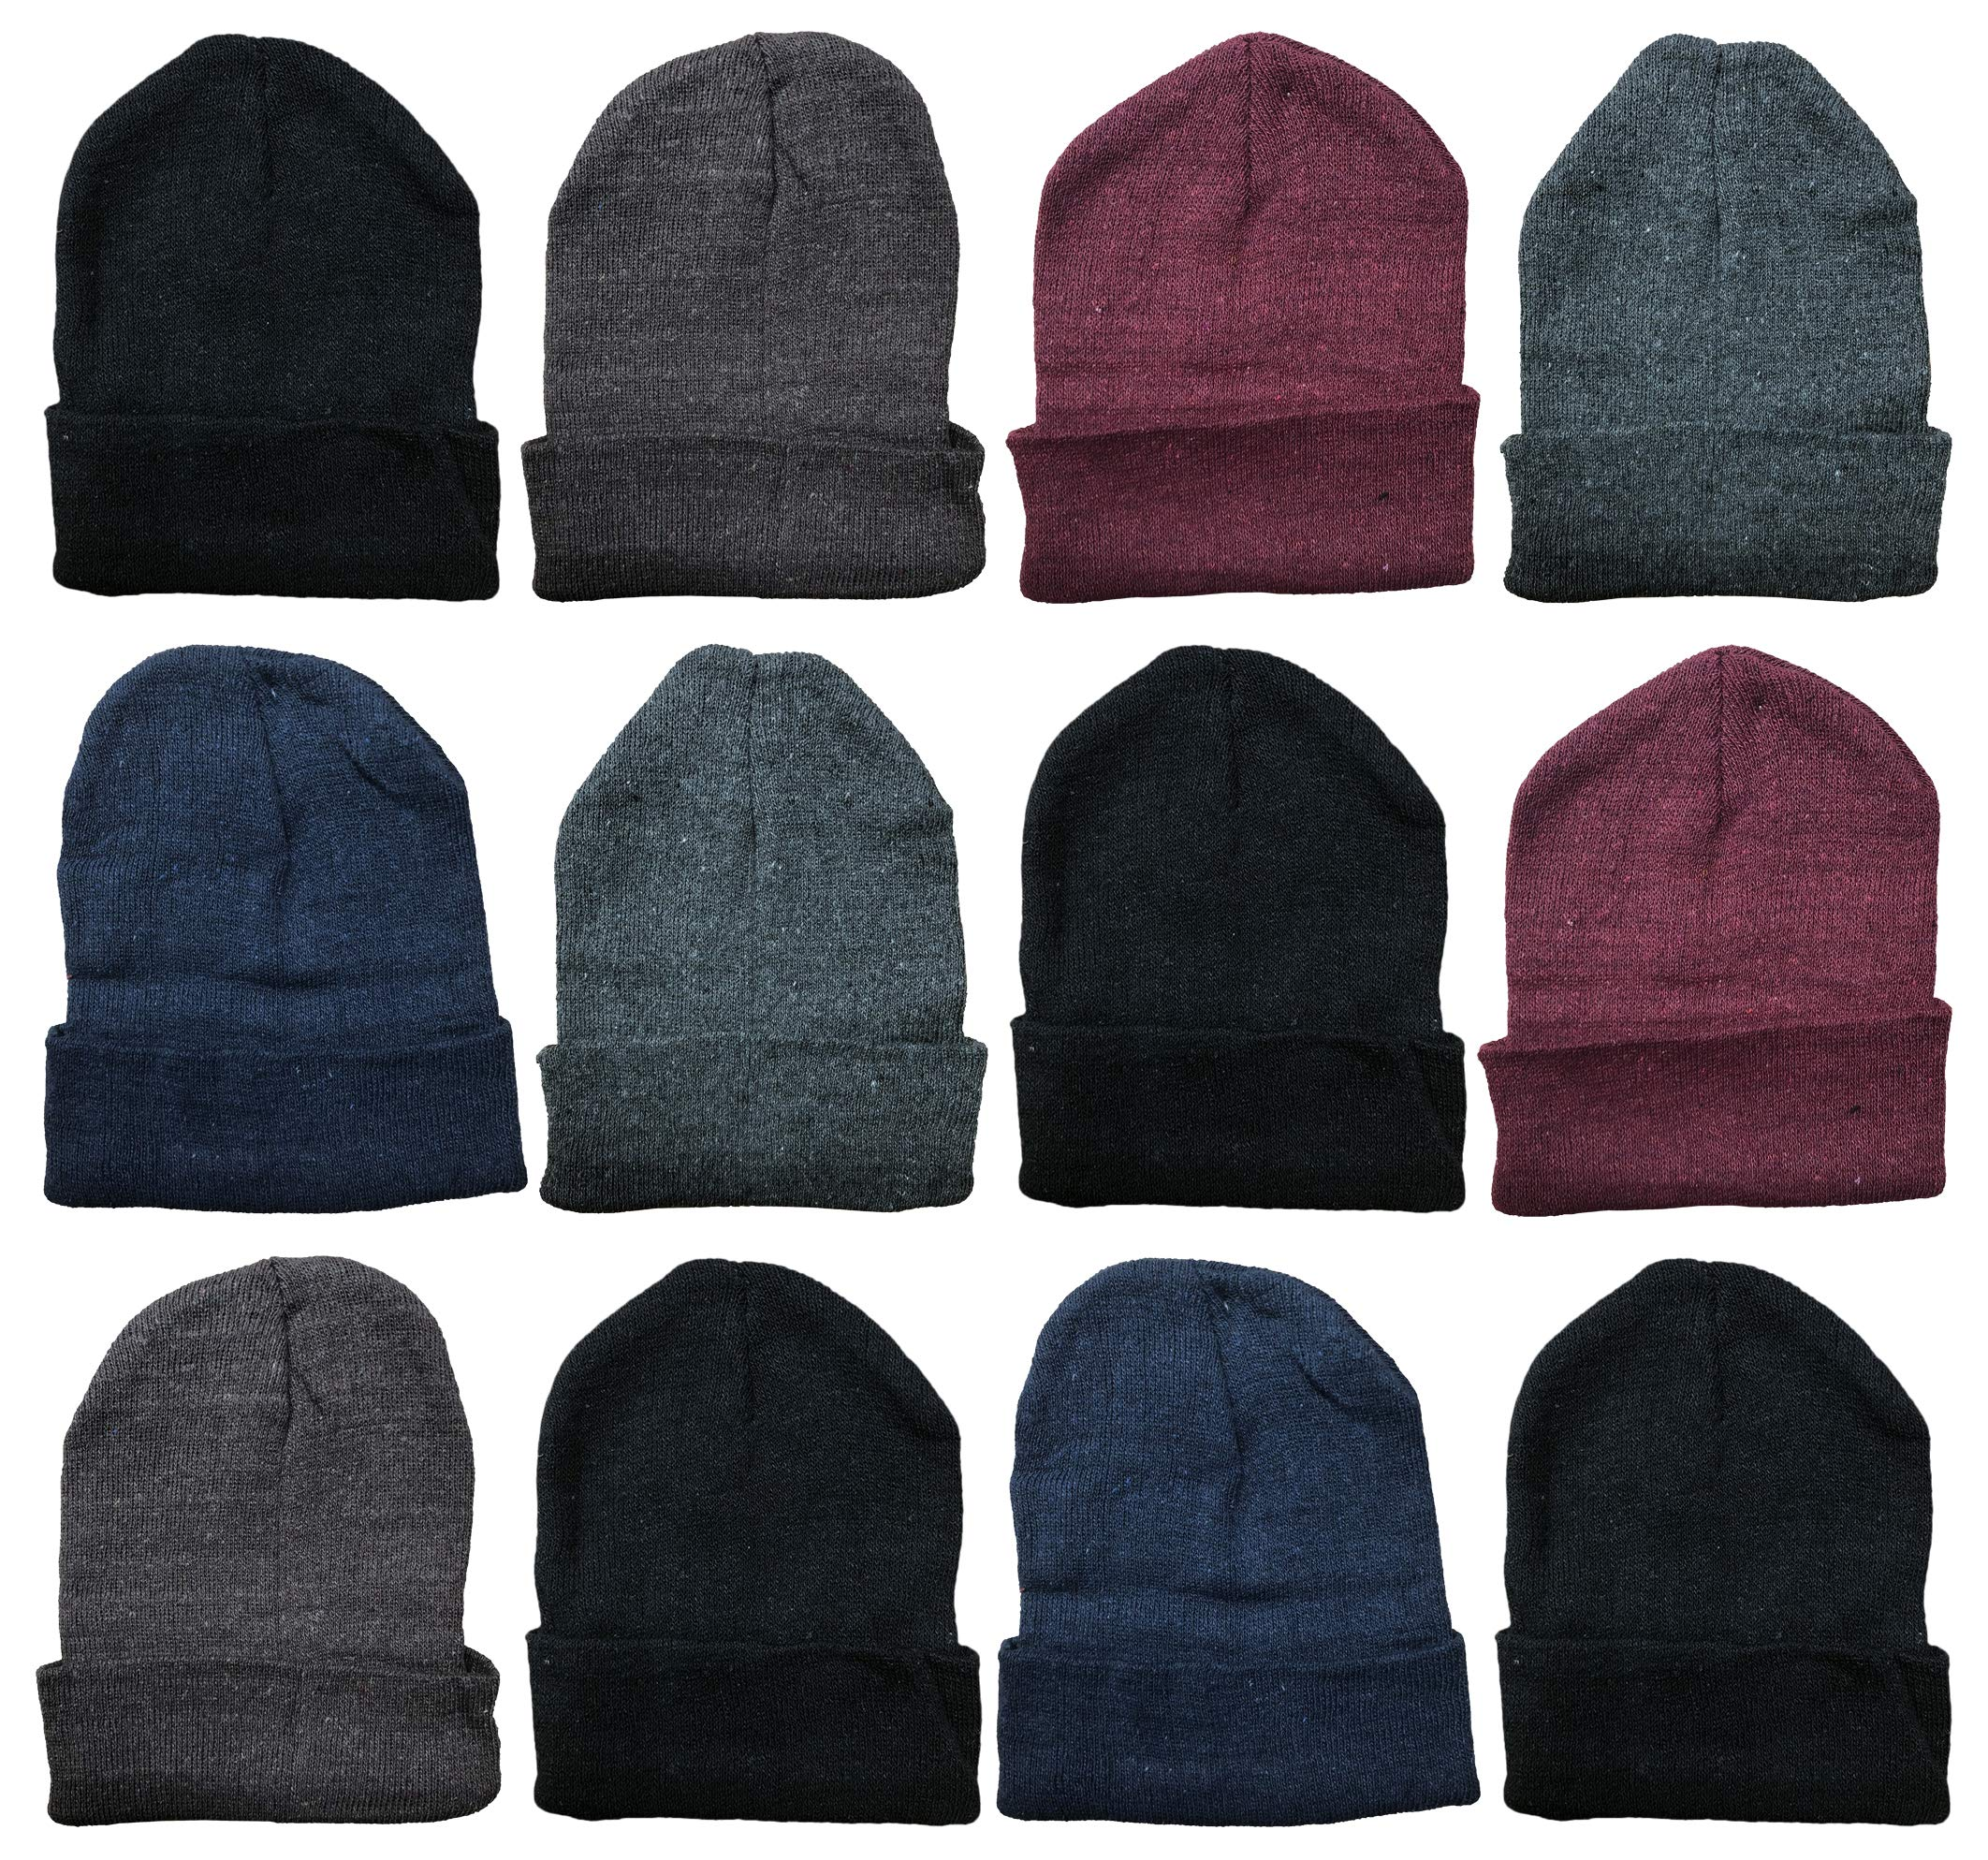 e49845d3 Galleon - Yacht & Smith Mens Womens Warm Winter Hats In Assorted Colors, Mens  Womens Unisex (12 Pack Assorted Solids (B))